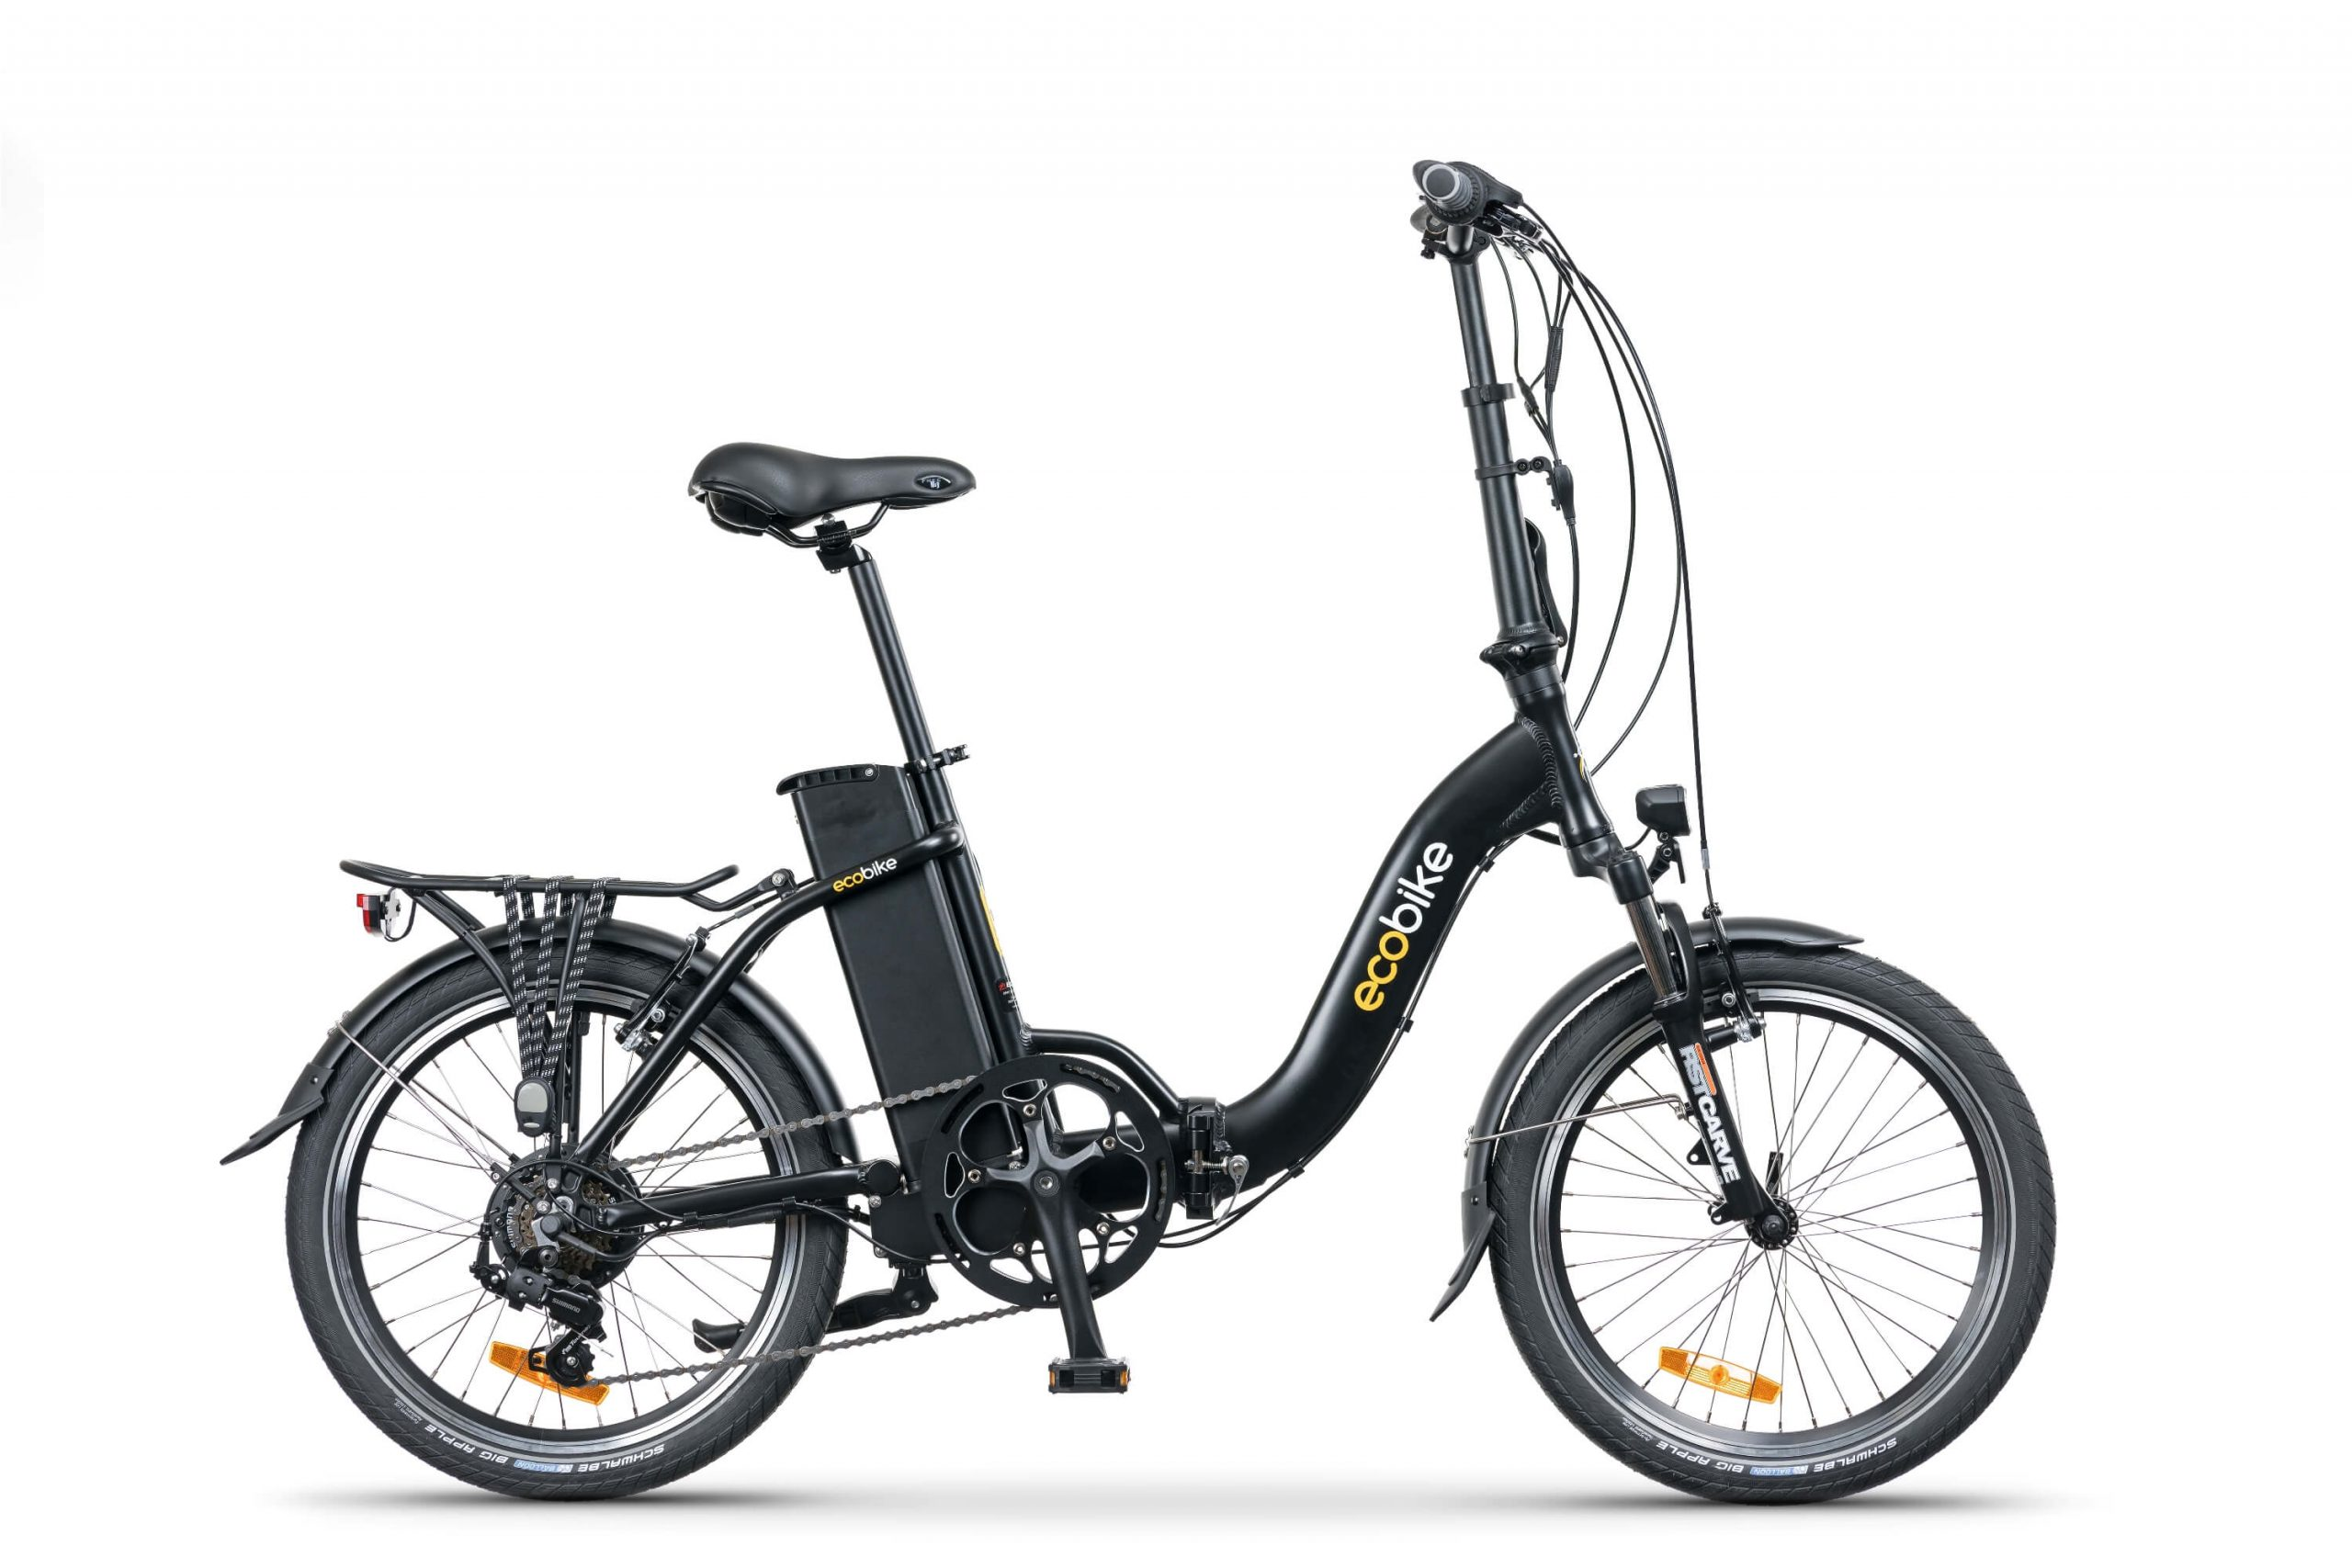 Rower ecobike Even black